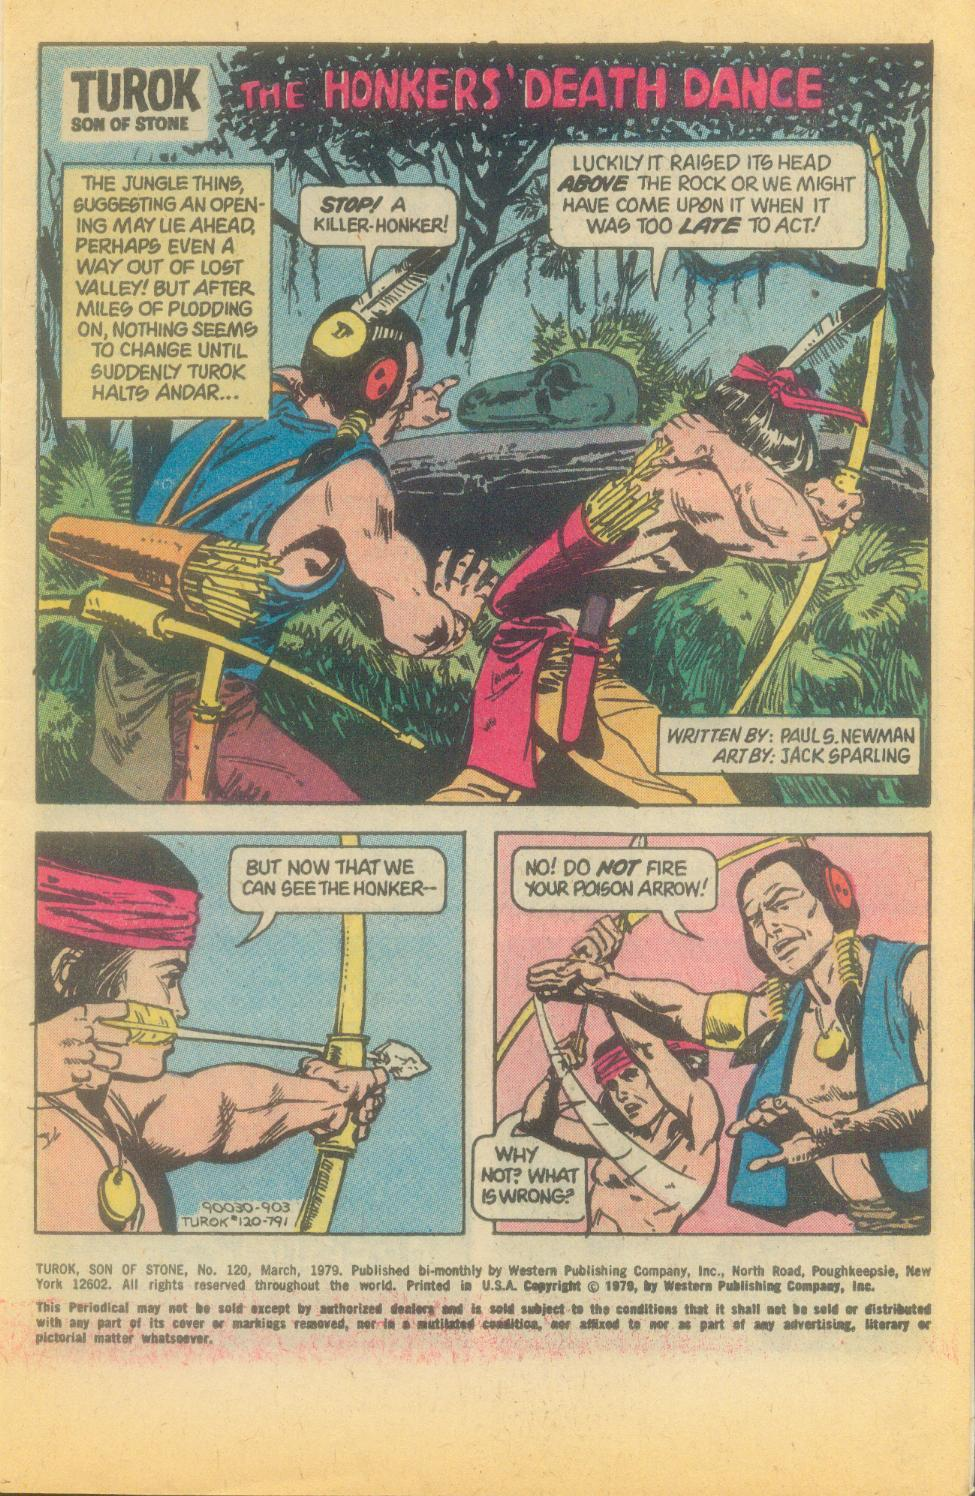 Read online Turok, Son of Stone comic -  Issue #120 - 3